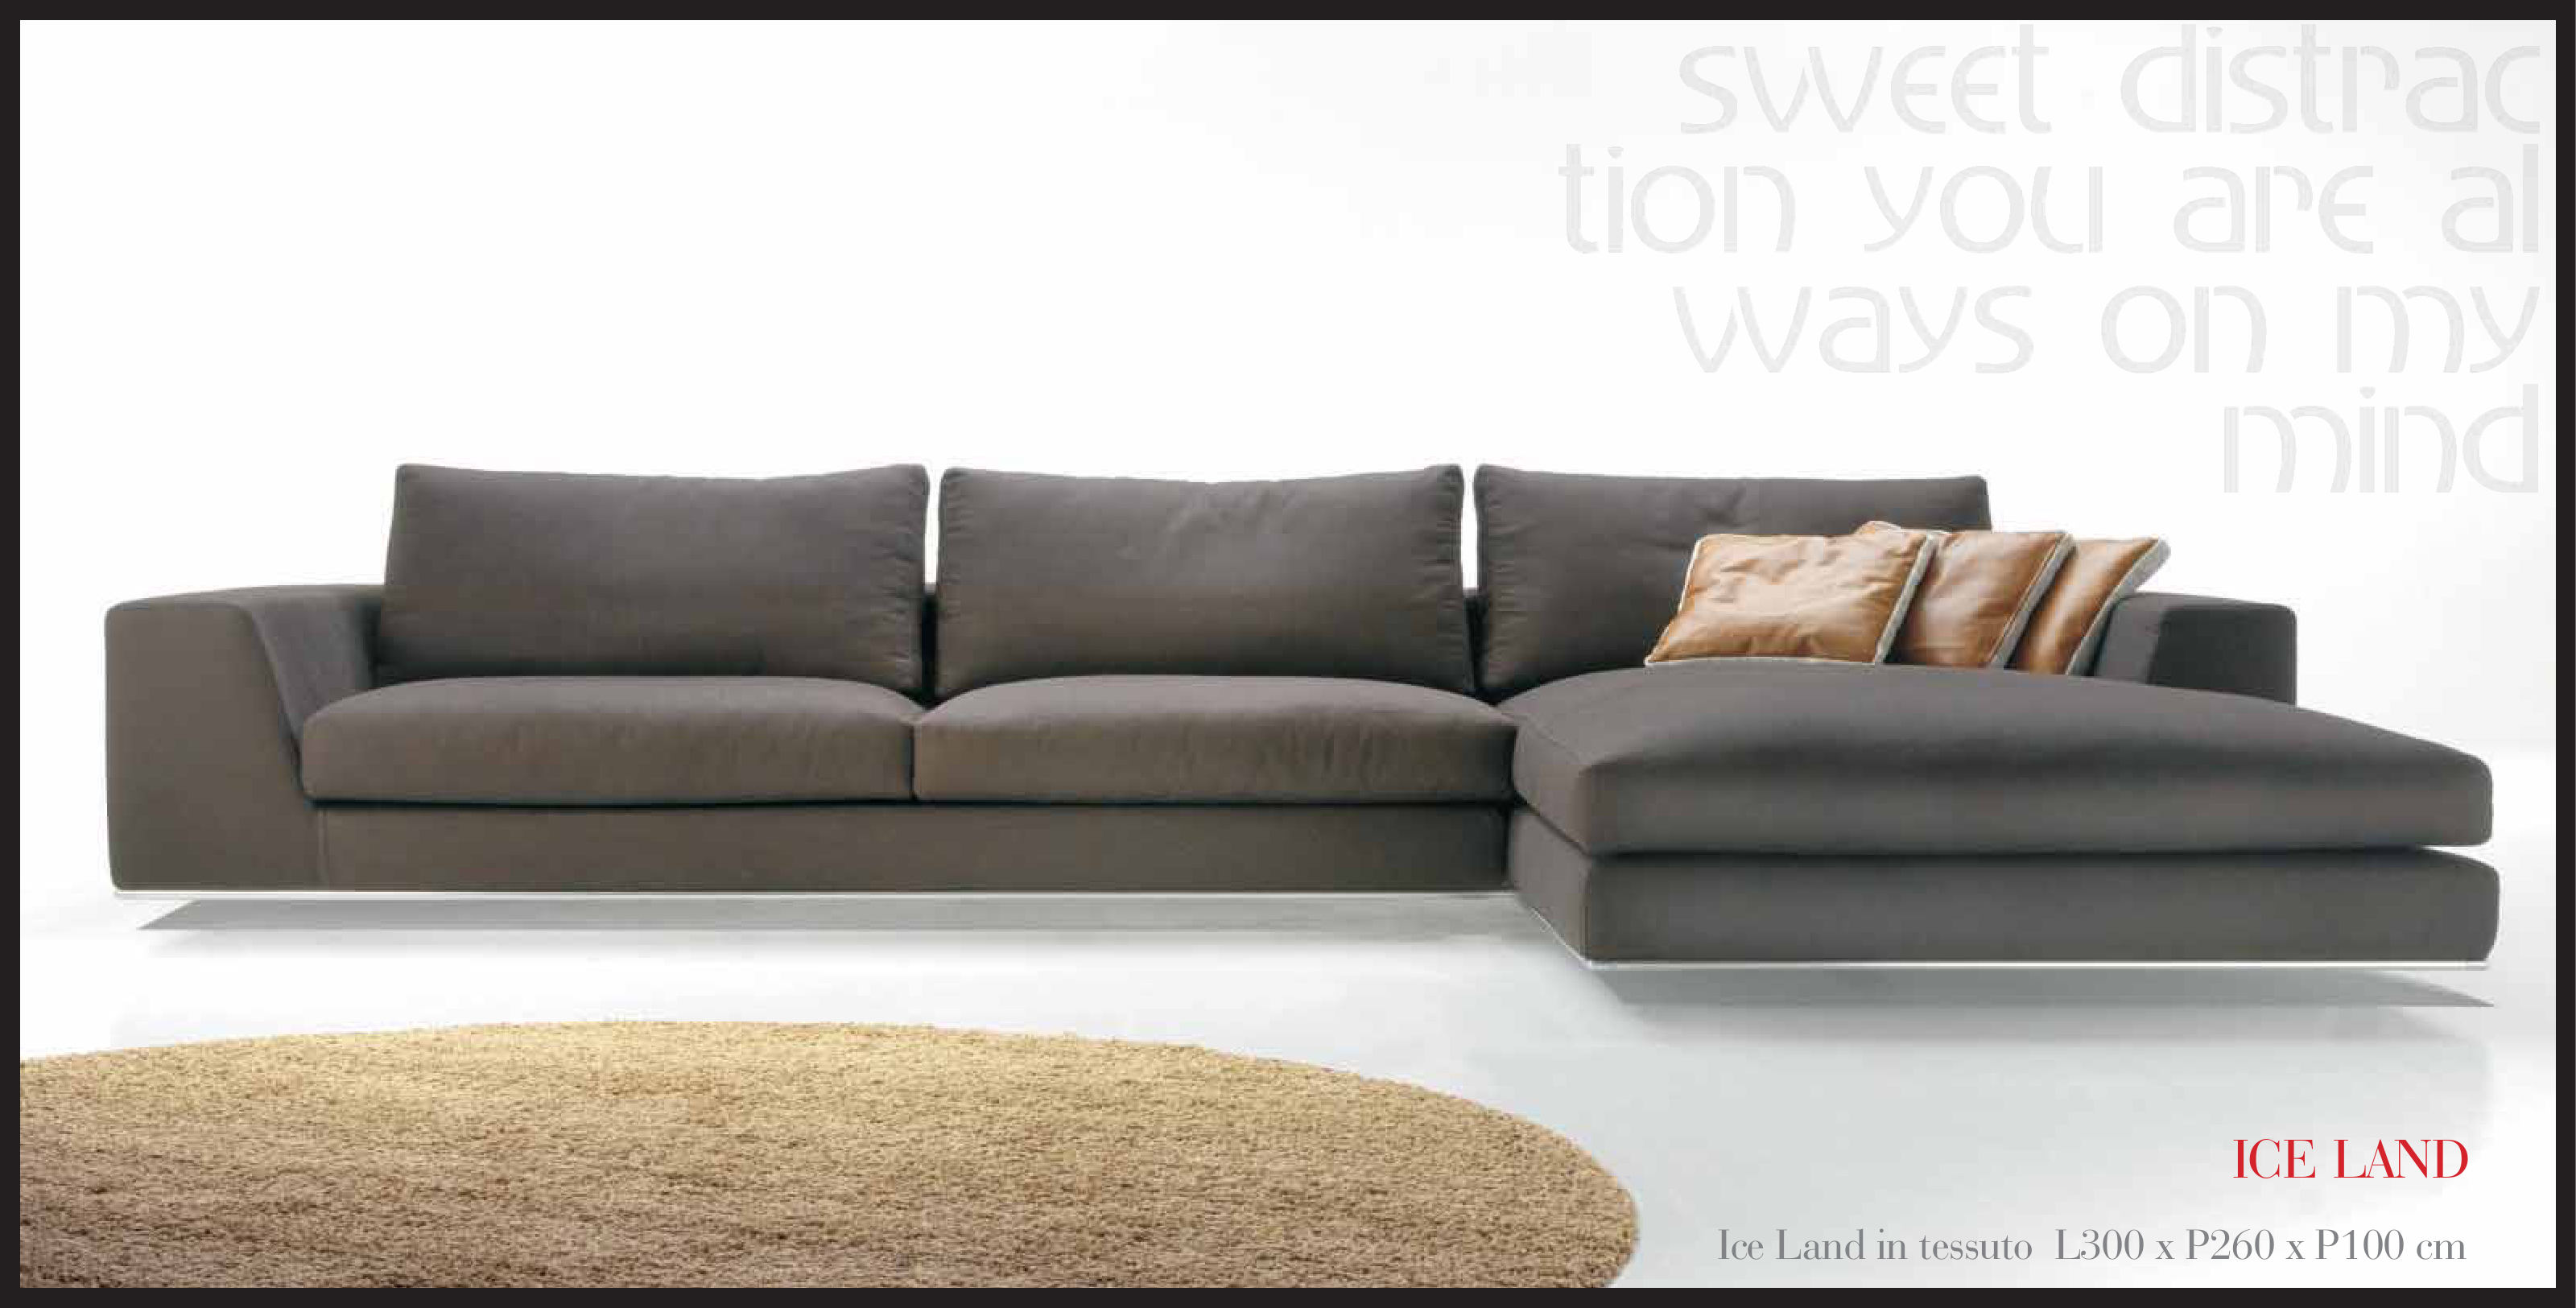 italian of modern franco tosh sectional sofa luxury furniture design